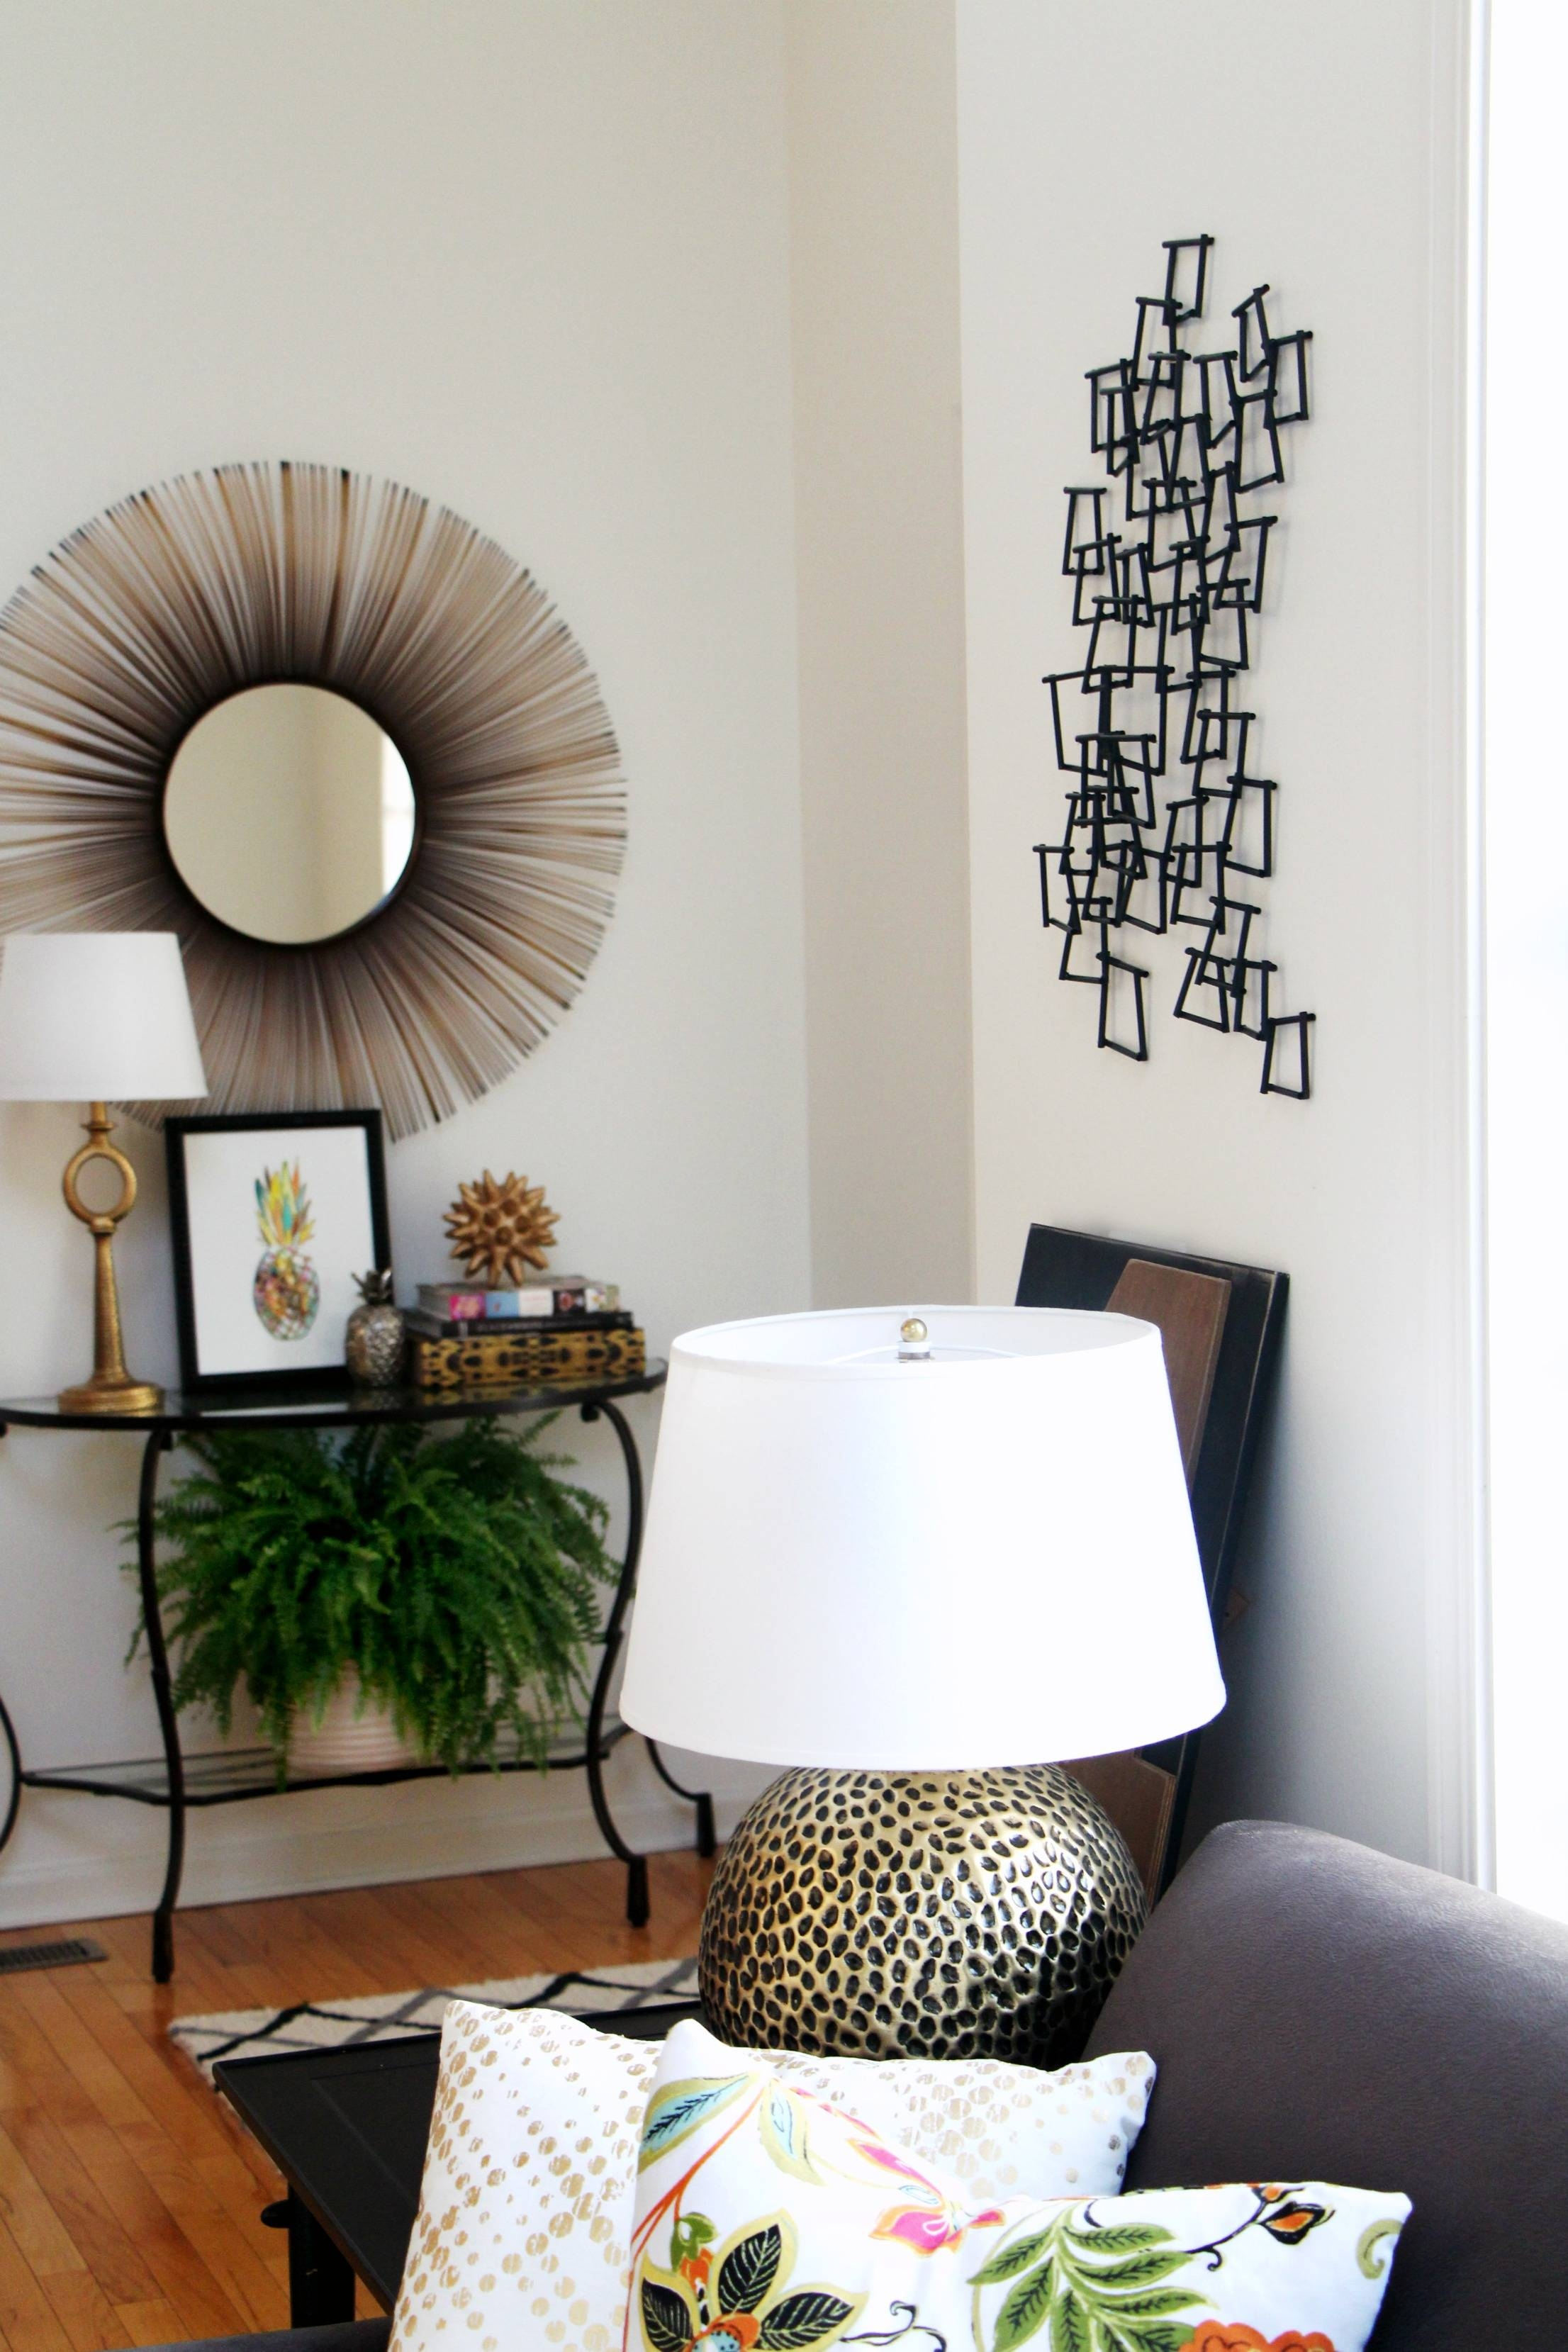 Diy Pottery Barn Inspired 3D Wall Art | This Is Our Bliss With Regard To Current Diy 3D Wall Art Decor (View 6 of 20)